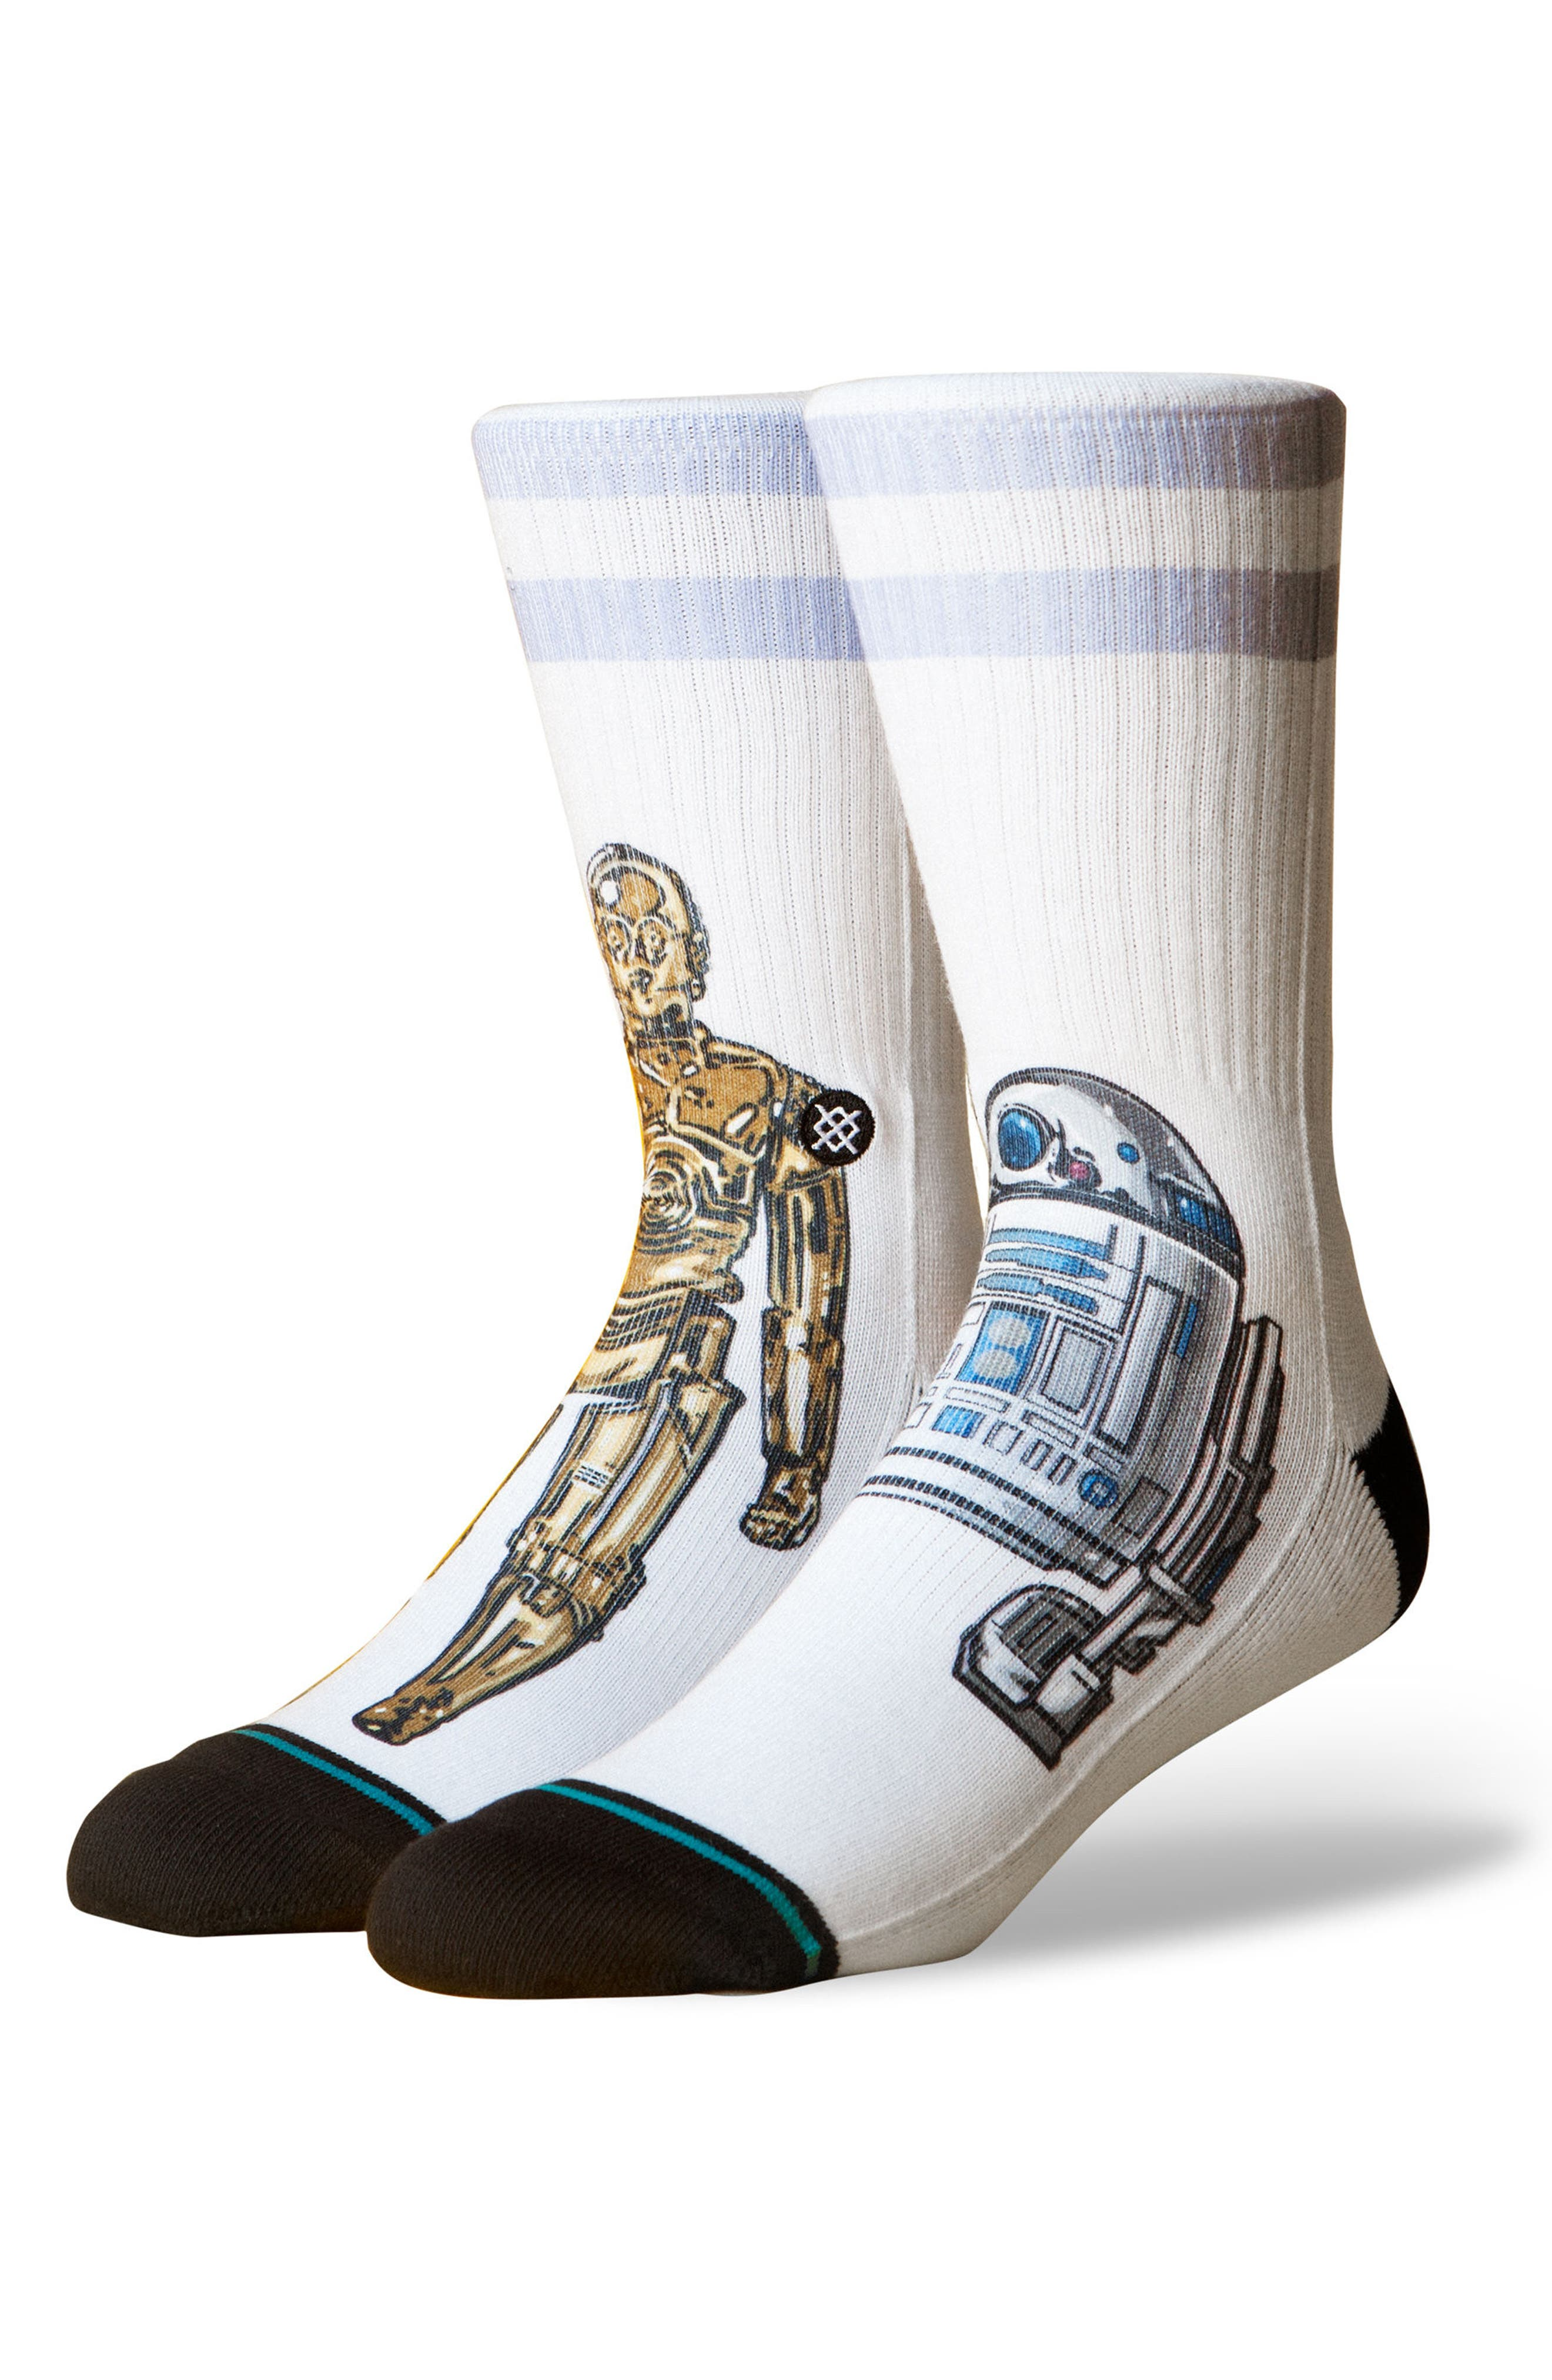 Star Wars<sup>™</sup> Prime Condition Socks,                         Main,                         color, White